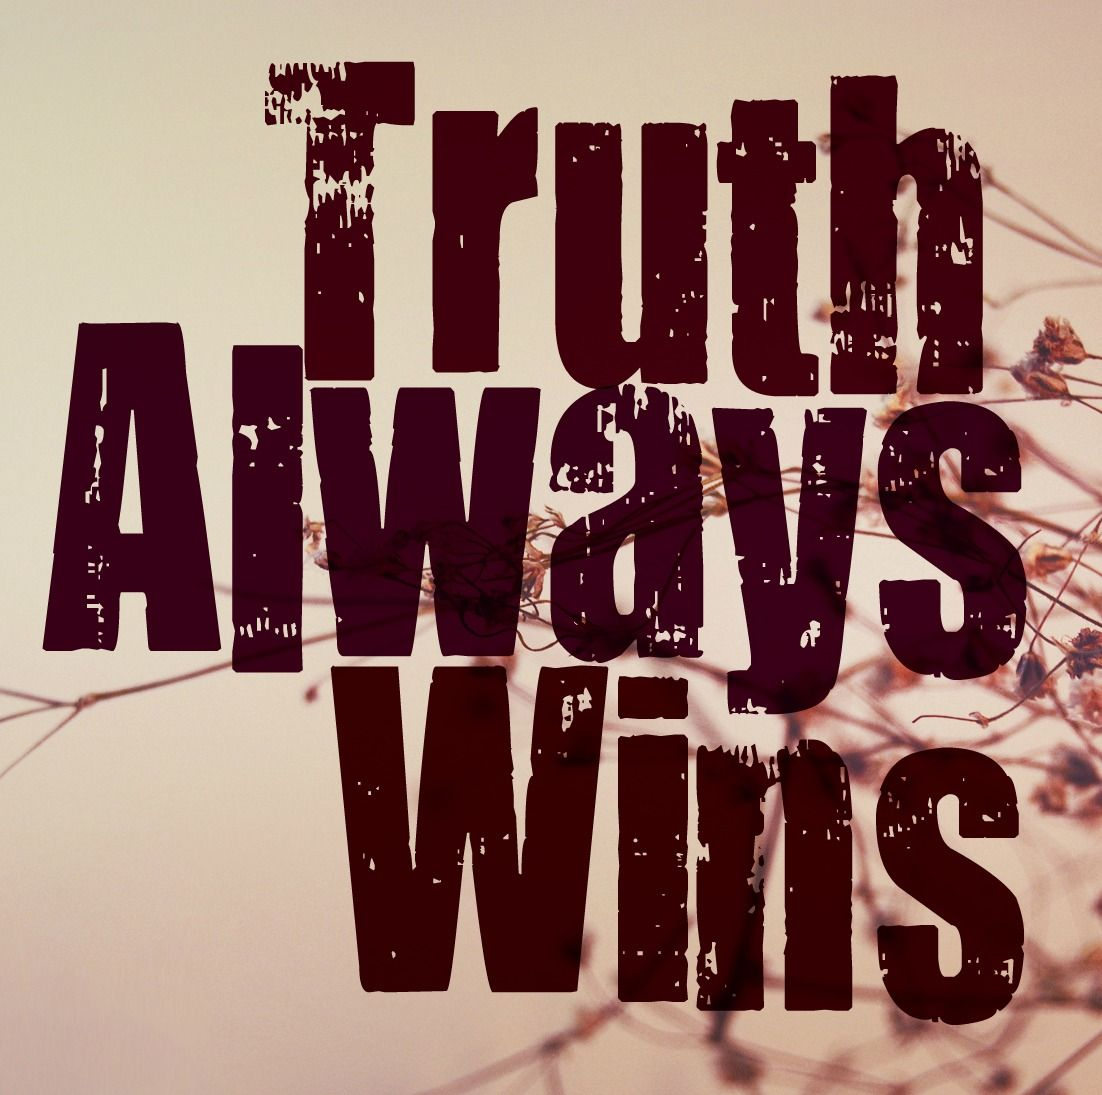 The truth always comes out quote truth always comes out in the end it - Its Funny When Ppl Show Their True Colors And Others See Reality Of Them First Hand All On Their Own Lol Truth Always Wins And Always Comes Out